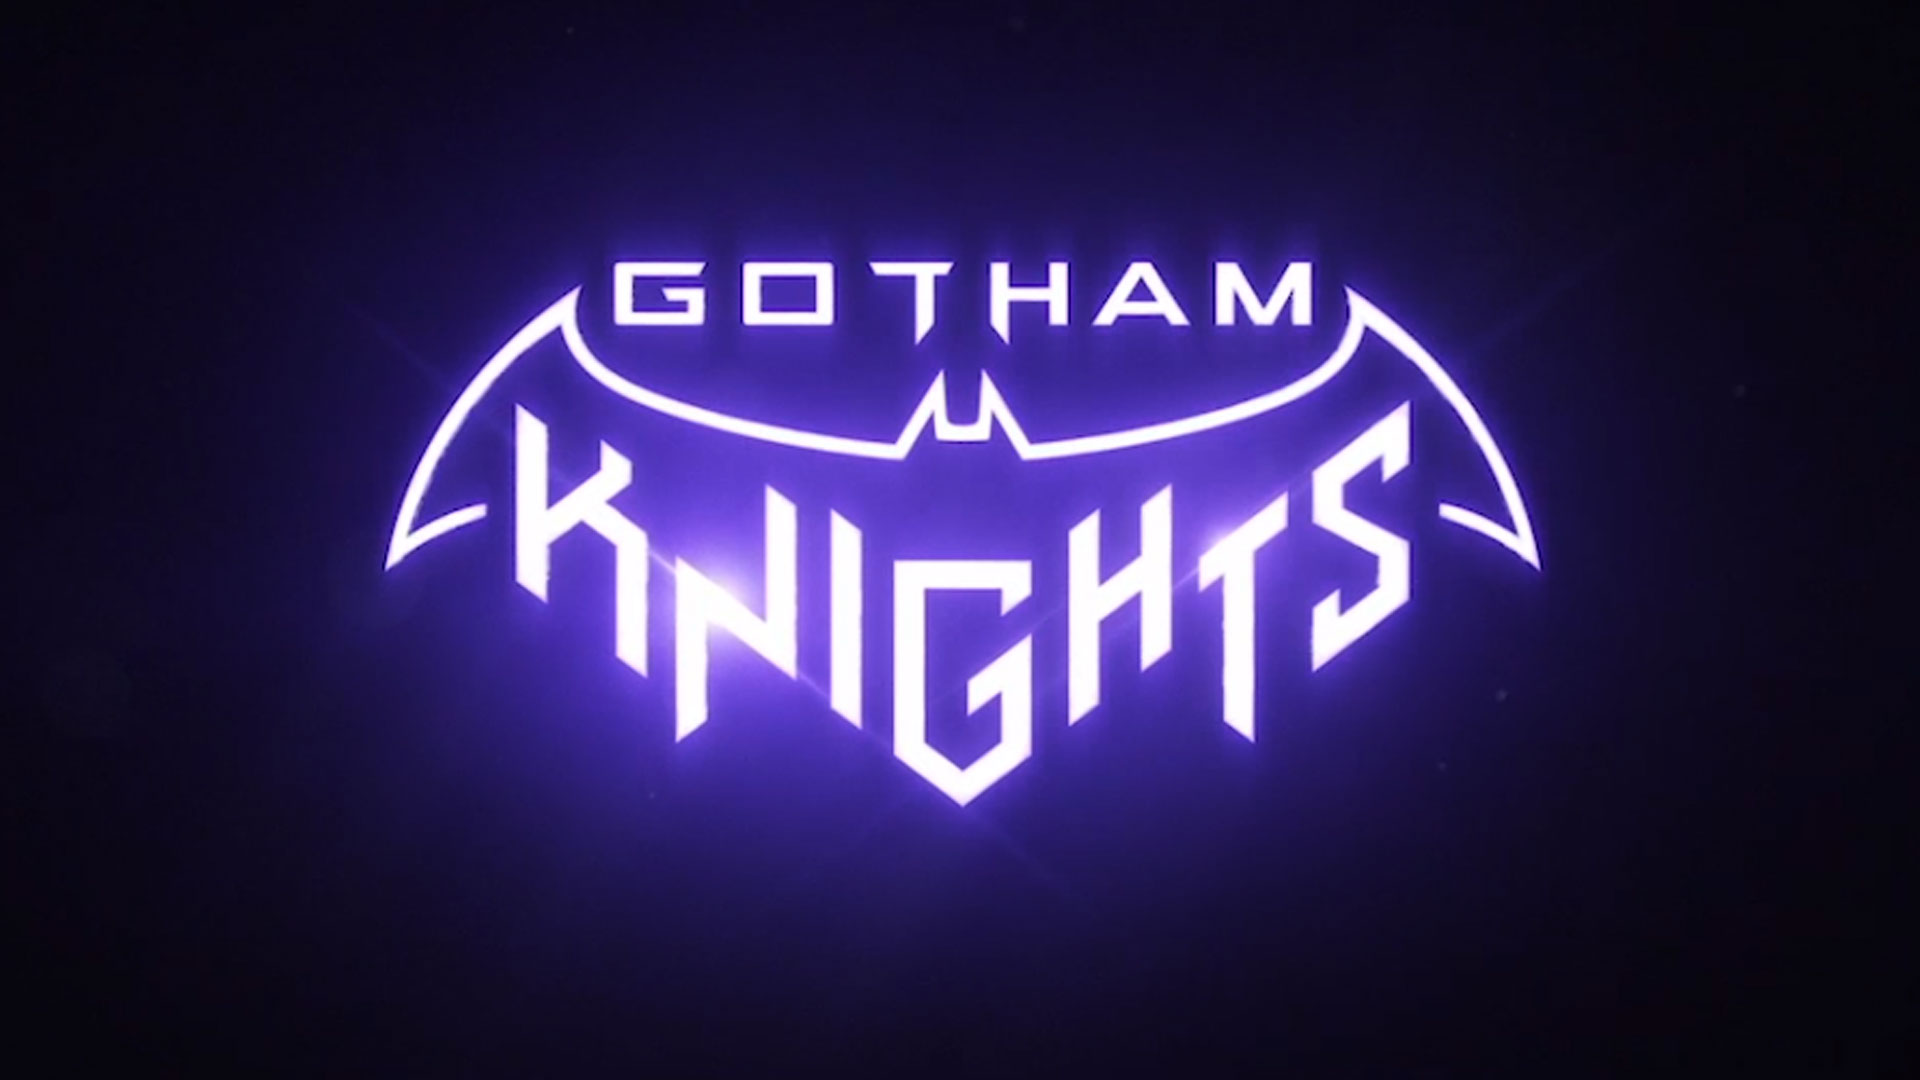 Gotham Knights - PS4 / PS5 - Wallpapers - 1920x1080